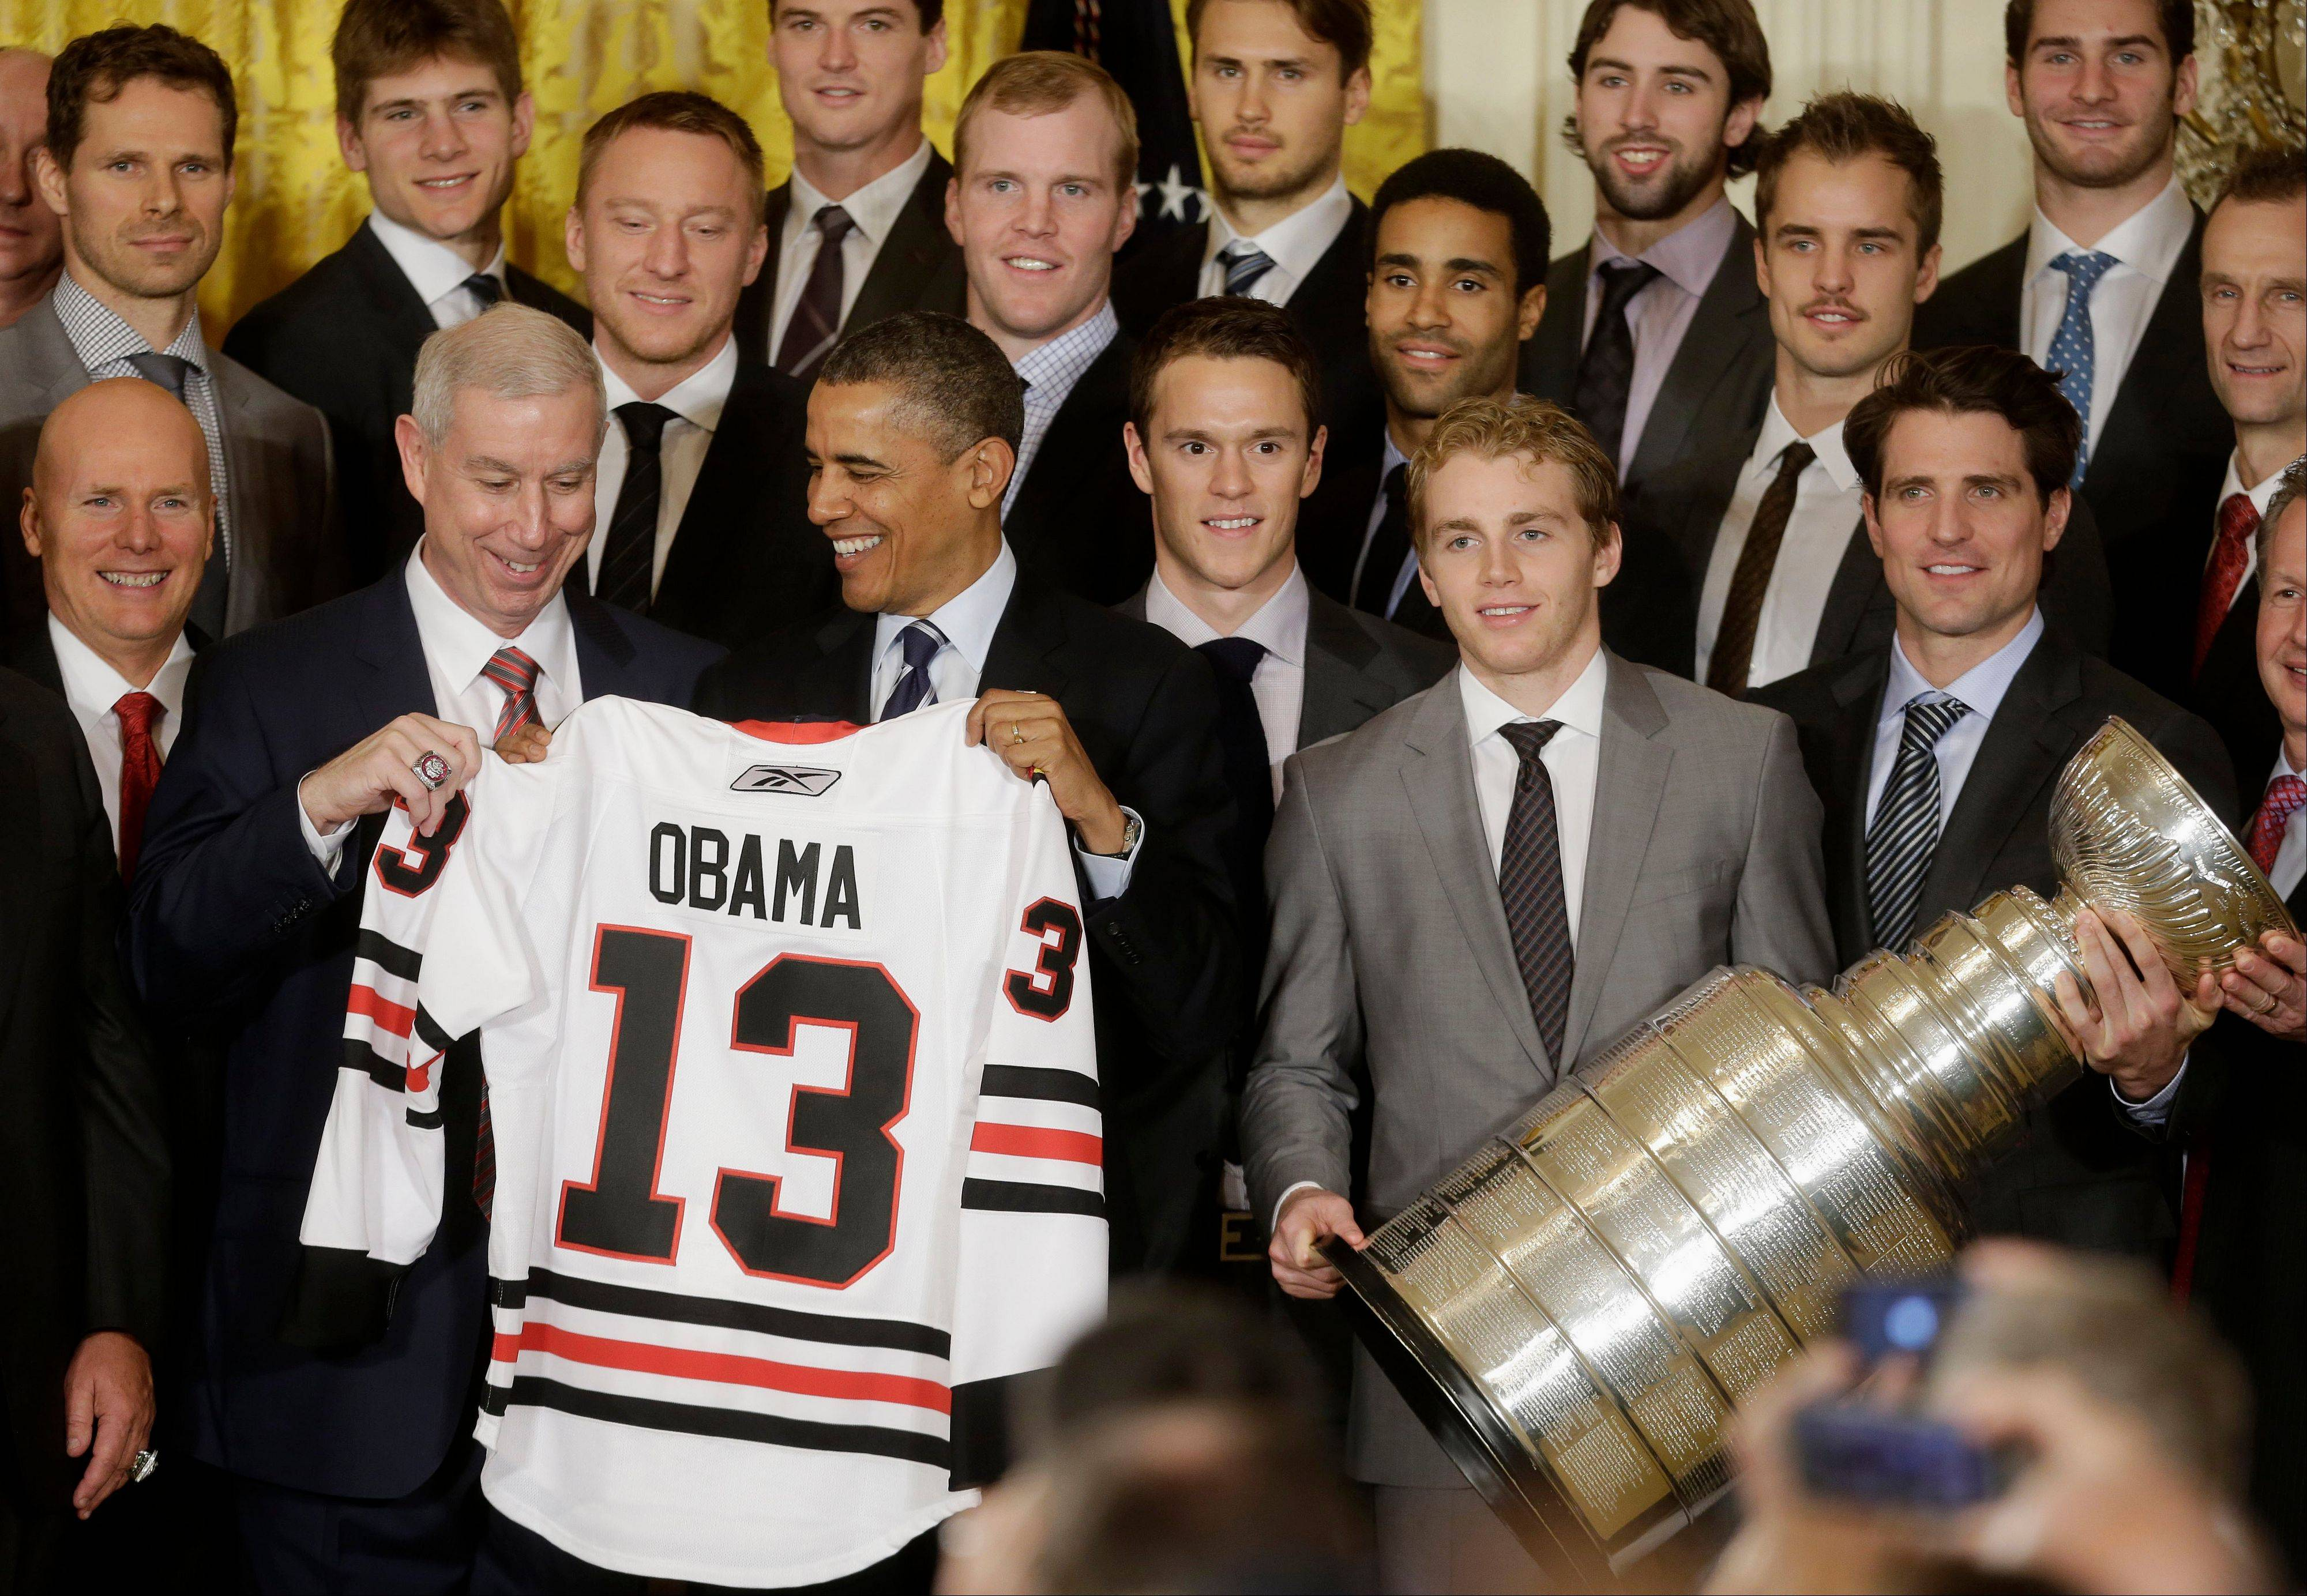 Chicago Blackhawks President and CEO John McDonough, left, presents President Barack Obama with a Blackhawks sweater in the East Room of the White House in Washington on Monday.